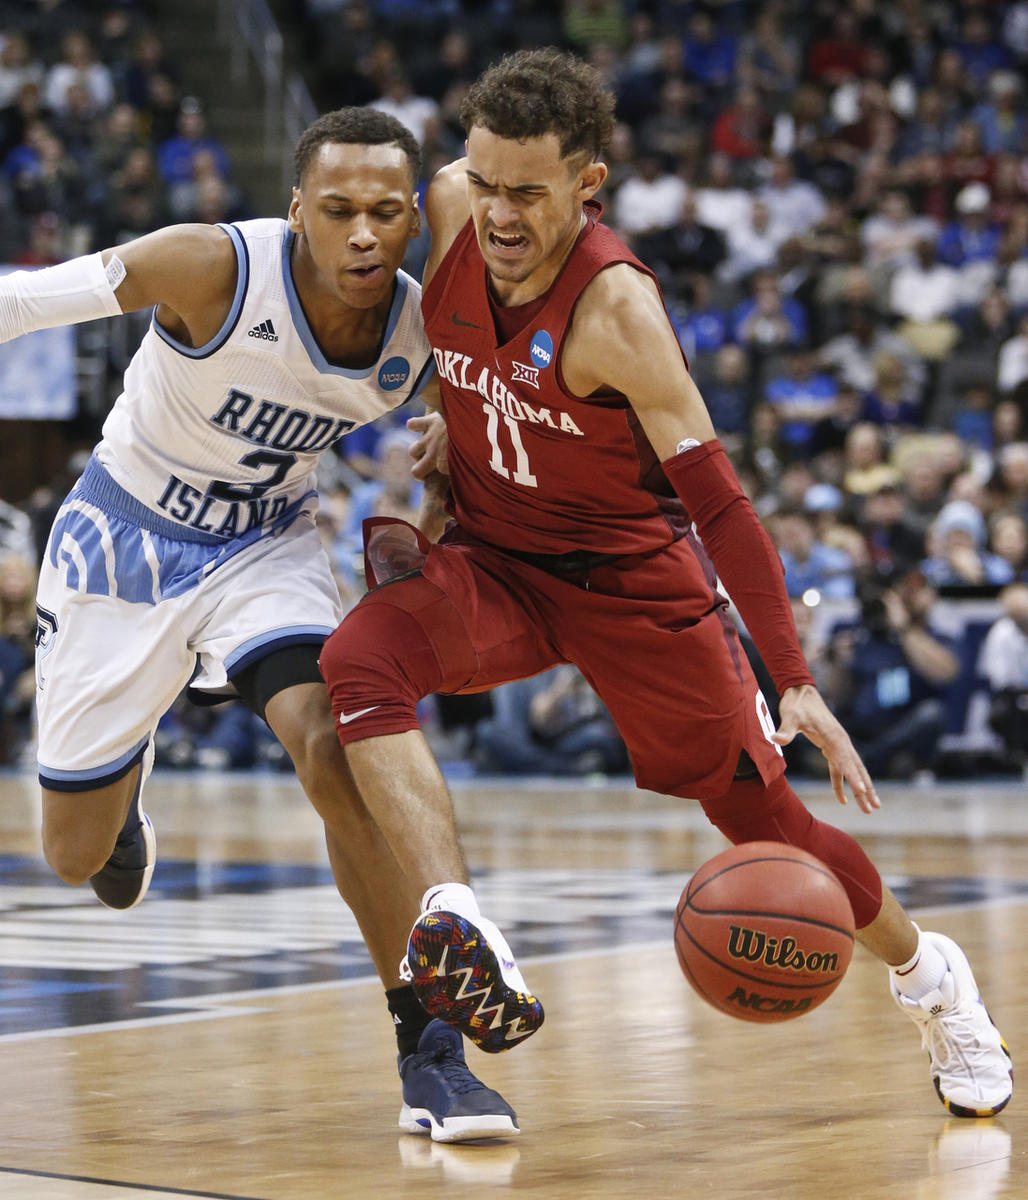 Oklahoma's Trae Young (11) drives as Rhode Island's Fatts Russell (2) defends during the second half of an NCAA men's college basketball tournament first-round game, Thursday, March 15, 2018, in Pittsburgh. Rhode Island won 83-78 in overtime to advance to